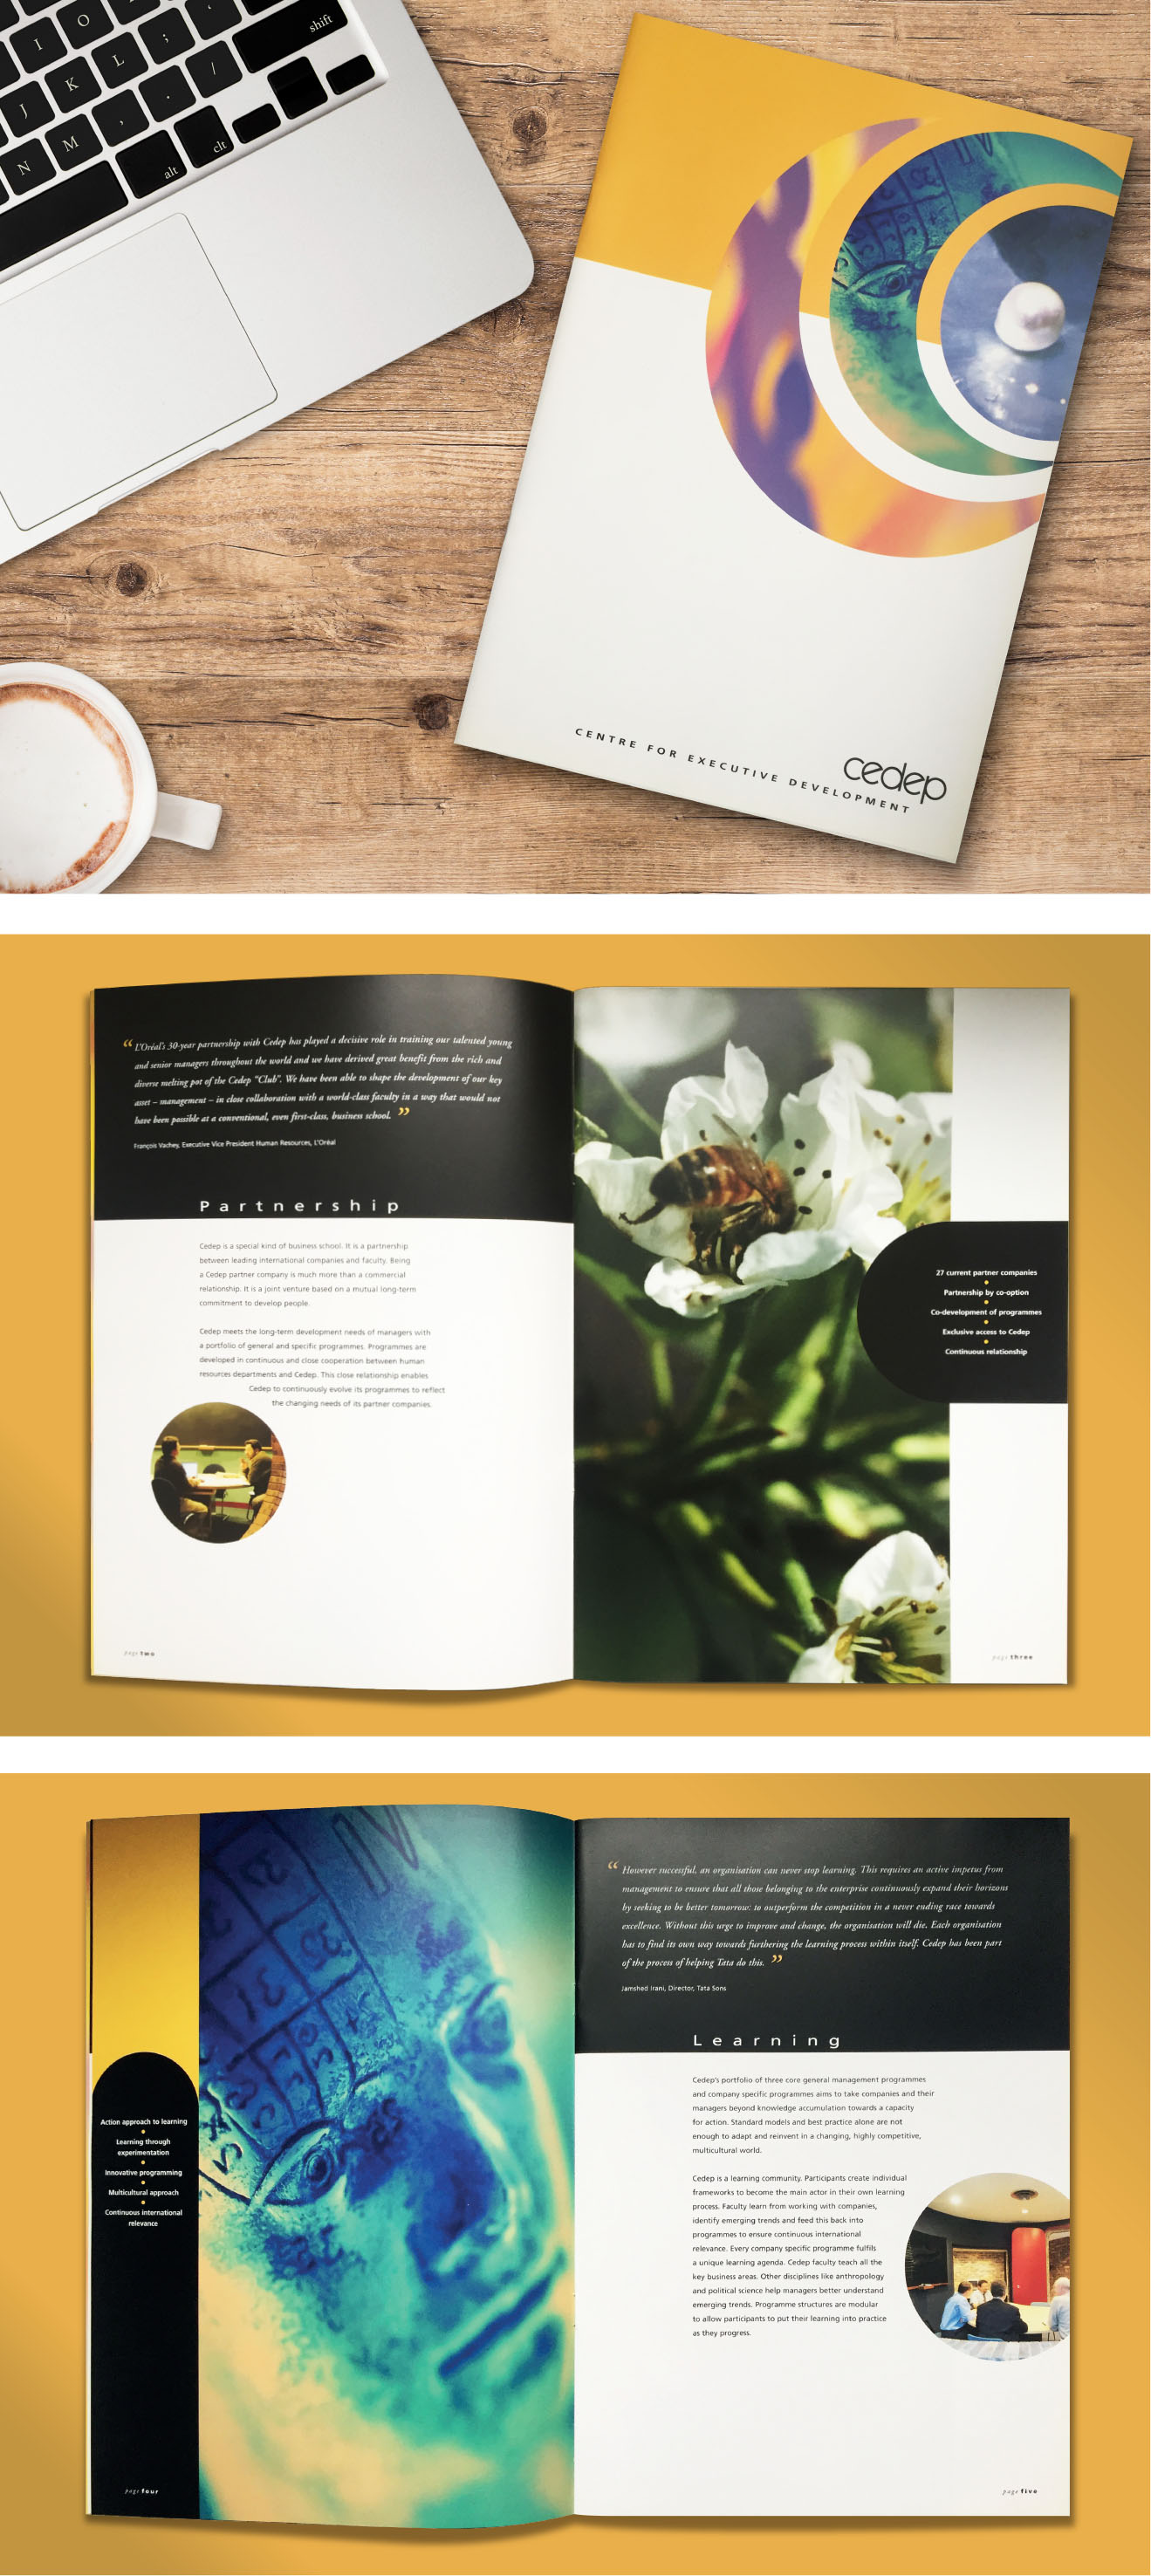 Image of CEDEP Brochure and sample spreads